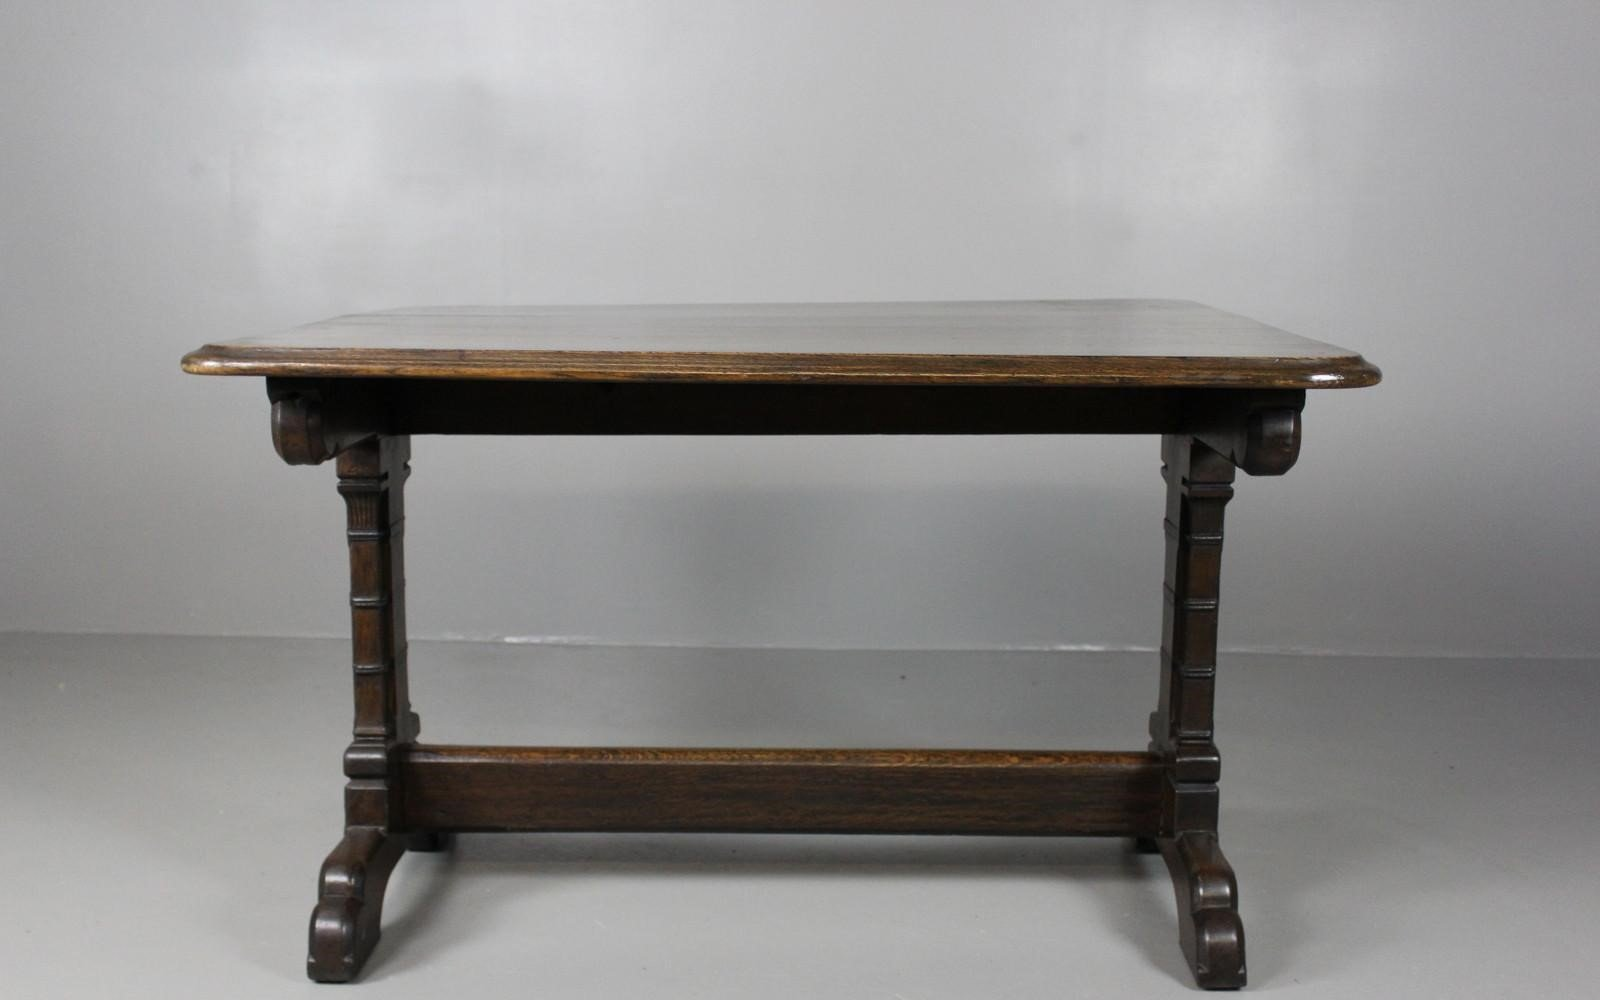 Victorian GothicStyle Oak Dining Table for sale at Pamono